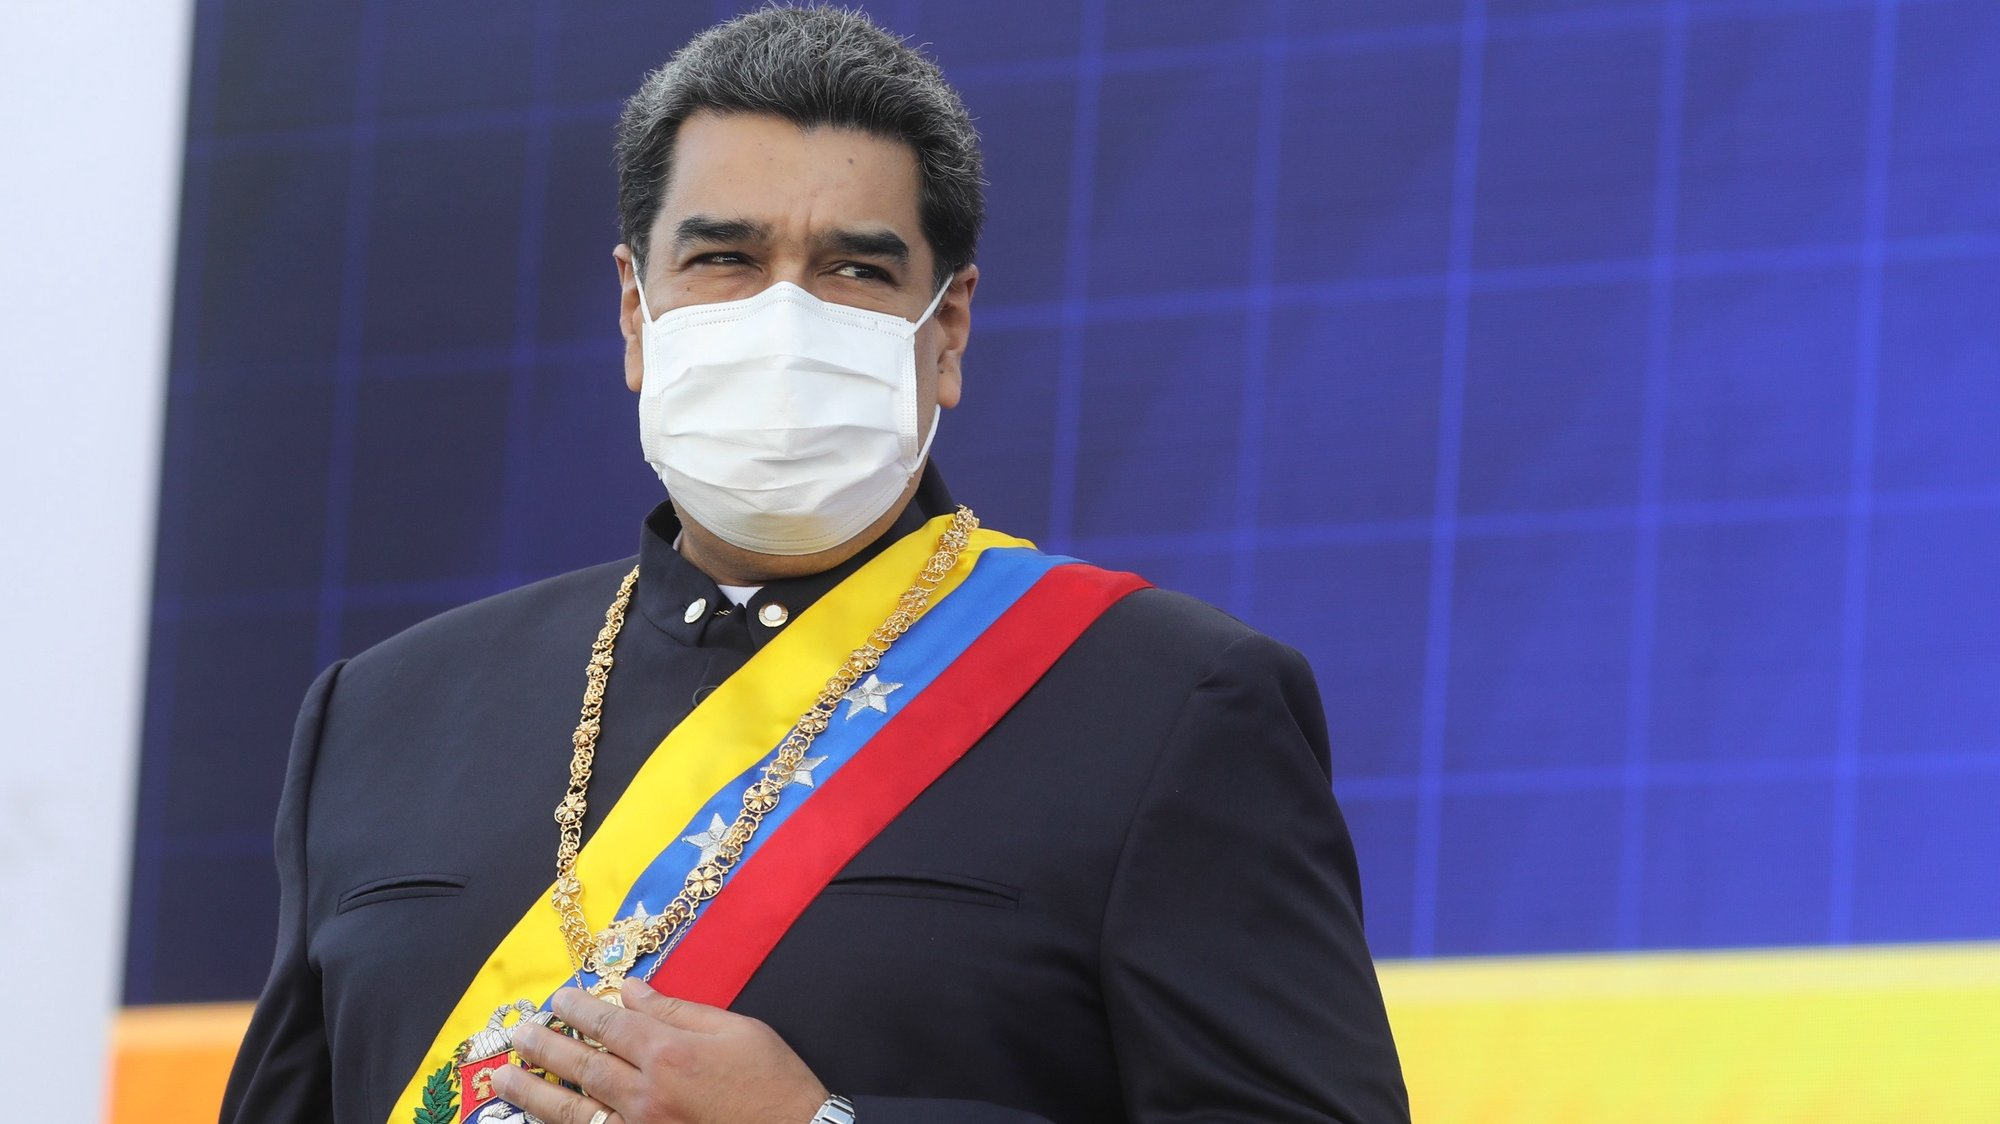 epa09324893 A handout photo made available by Miraflores Press shows Venezuelan President Nicolas Maduro during the celebration of the 210th anniversary of the signing of the independence act, in Caracas, Venezuela, 05 July 2021. Maduro affirmed that 'Celebrating independence today, 210 years after the signing of the act, means a commitment to recover and restore the socialist welfare state built in these years of the Bolivarian revolution,' said the President ahead of the traditional parade of the 05 July and after presiding over a promotion ceremony.  EPA/Miraflores Press HANDOUT  HANDOUT EDITORIAL USE ONLY/NO SALES